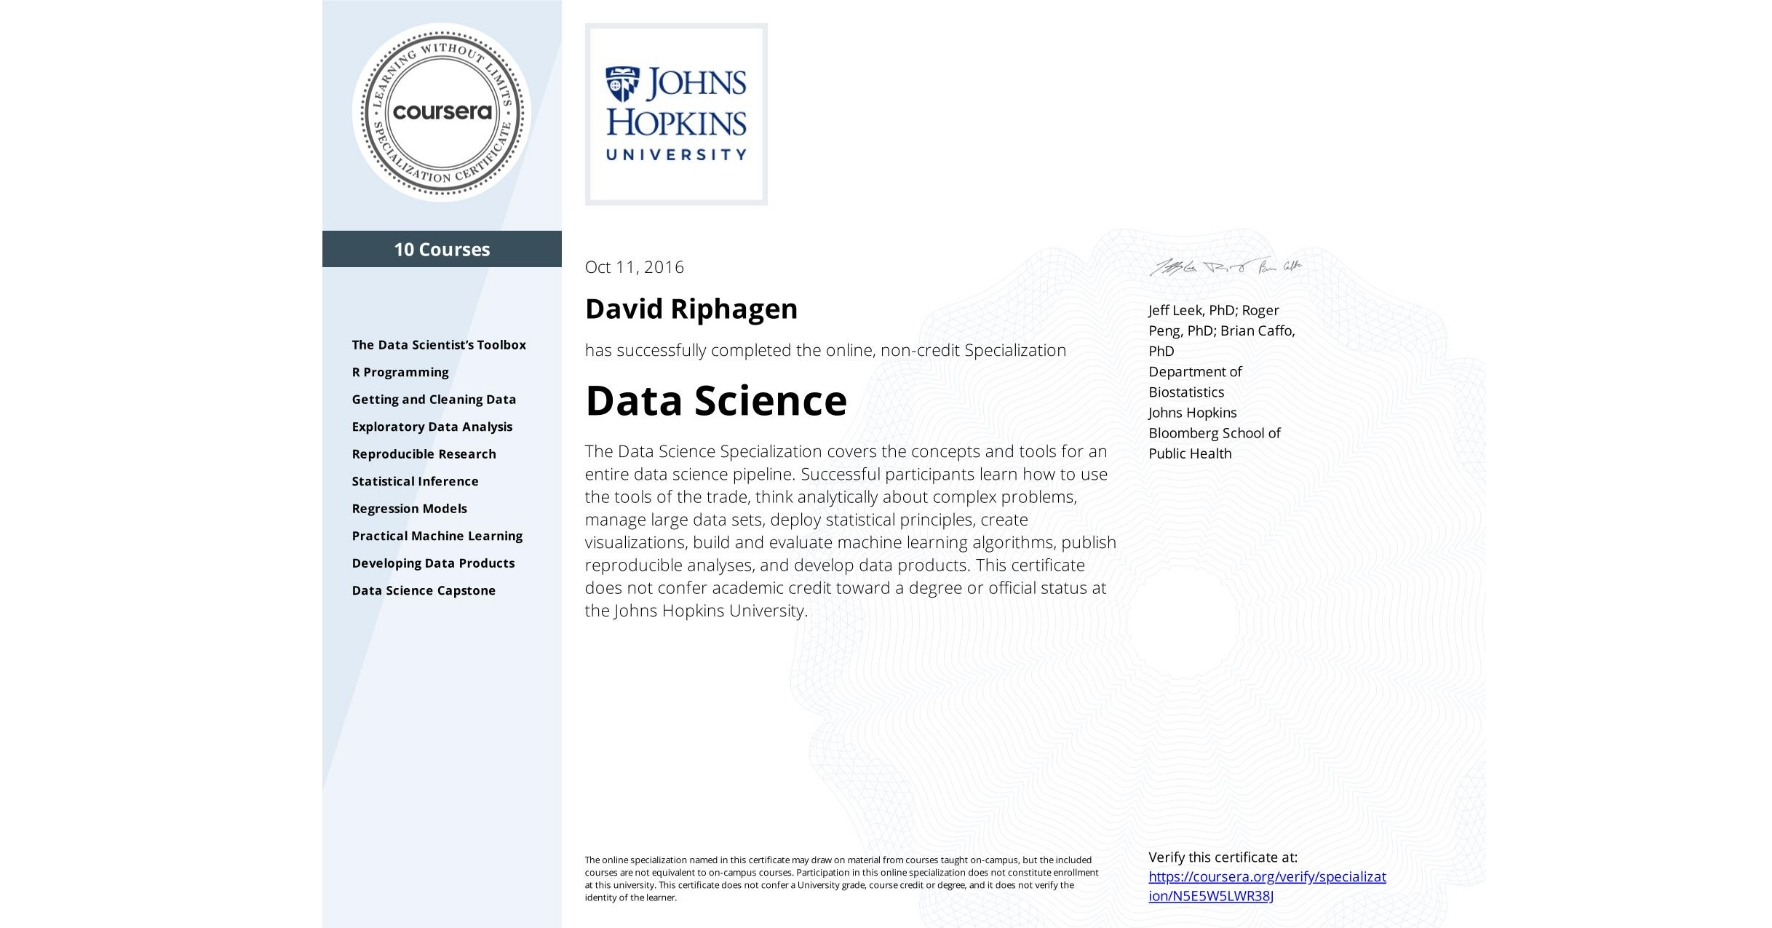 View certificate for David Riphagen, Data Science, offered through Coursera. The Data Science Specialization covers the concepts and tools for an entire data science pipeline. Successful participants learn how to use the tools of the trade, think analytically about complex problems, manage large data sets, deploy statistical principles, create visualizations, build and evaluate machine learning algorithms, publish reproducible analyses, and develop data products.    This certificate does not confer academic credit toward a degree or official status at the Johns Hopkins University.